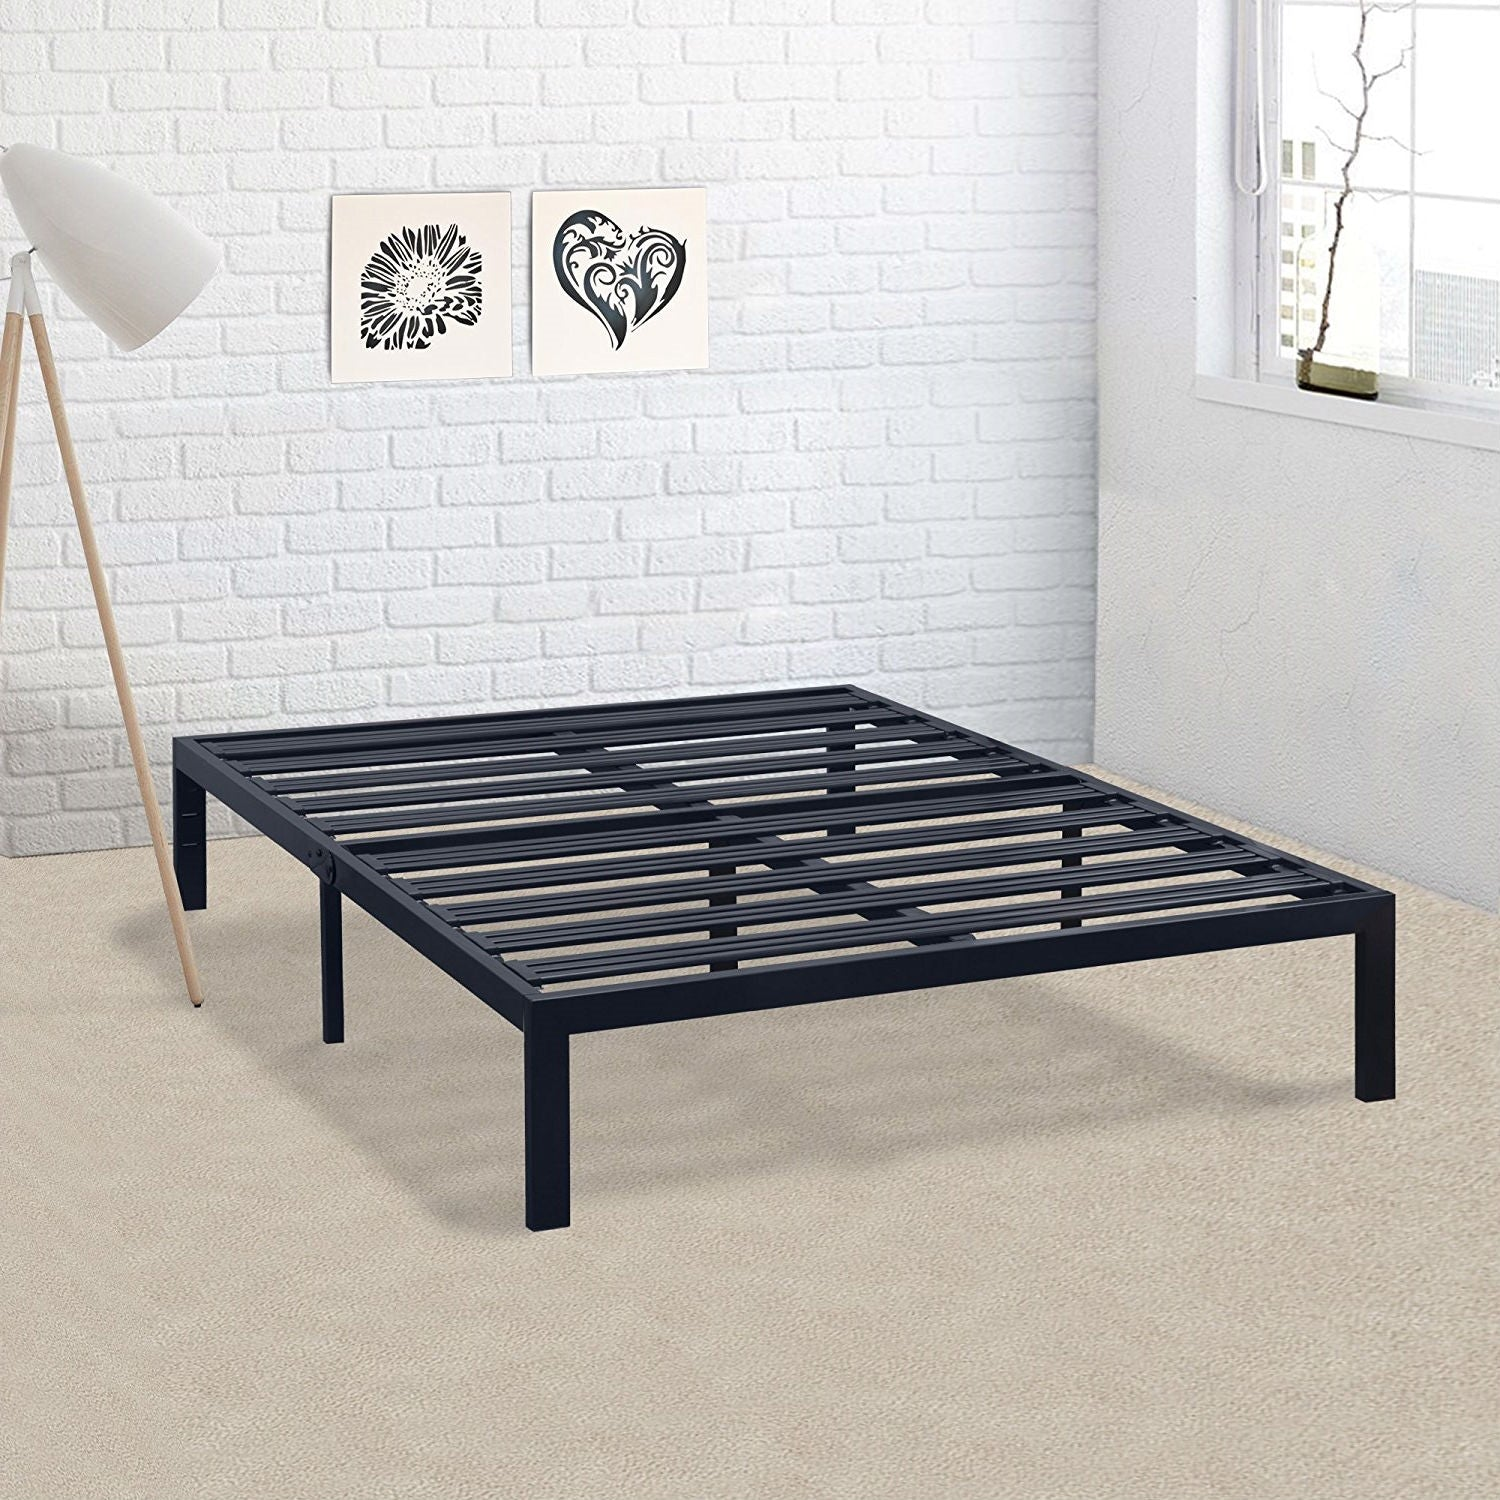 California King Metal Platform Bed Frame with Heavy Duty Slats